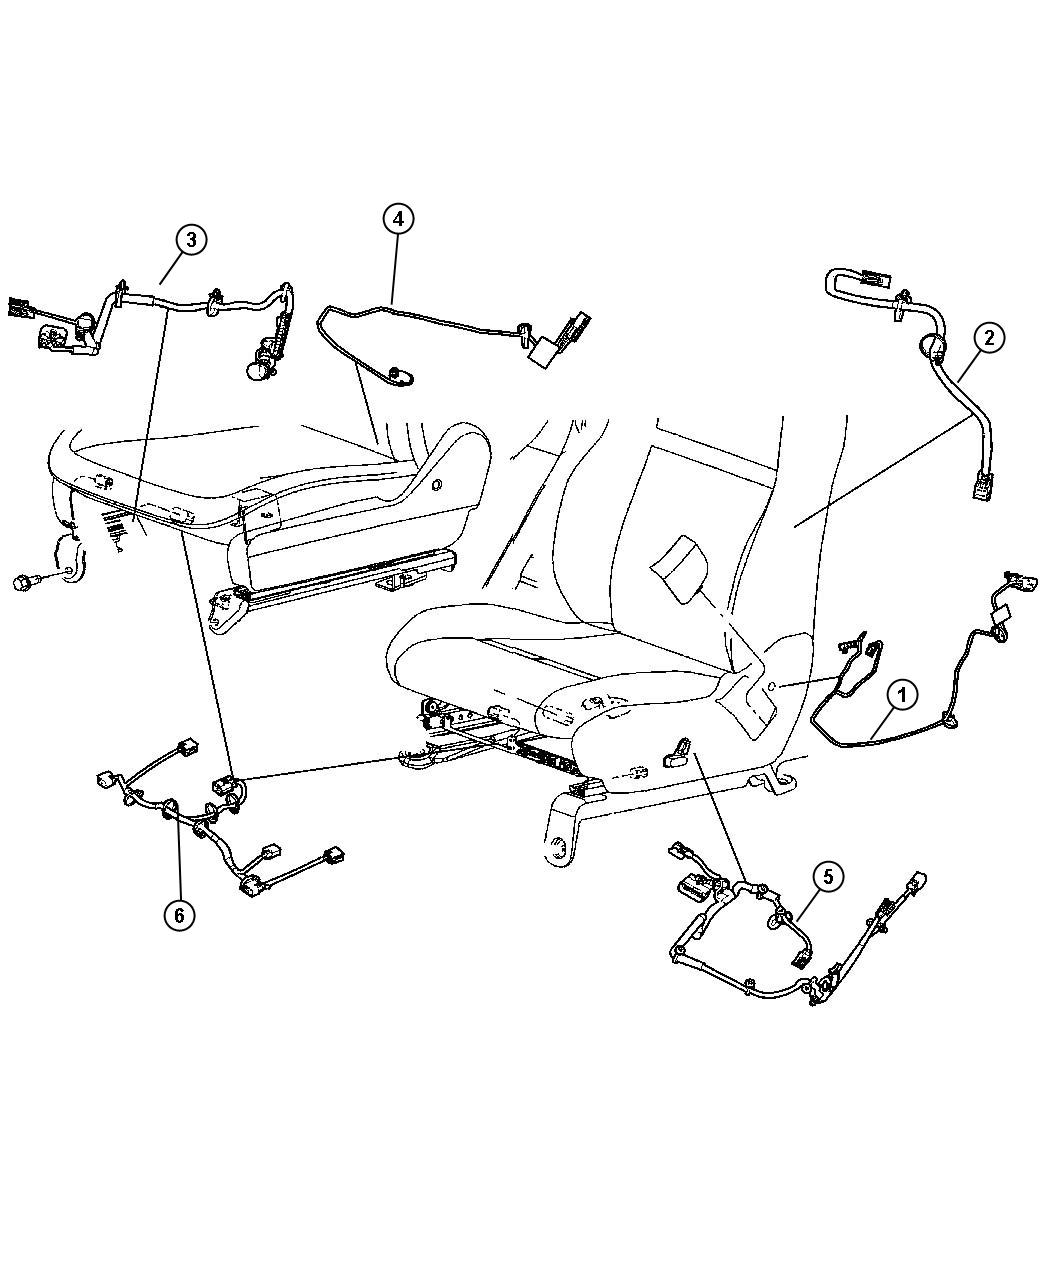 Jeep Grand Cherokee Wiring. Power seat. Right. 4 way